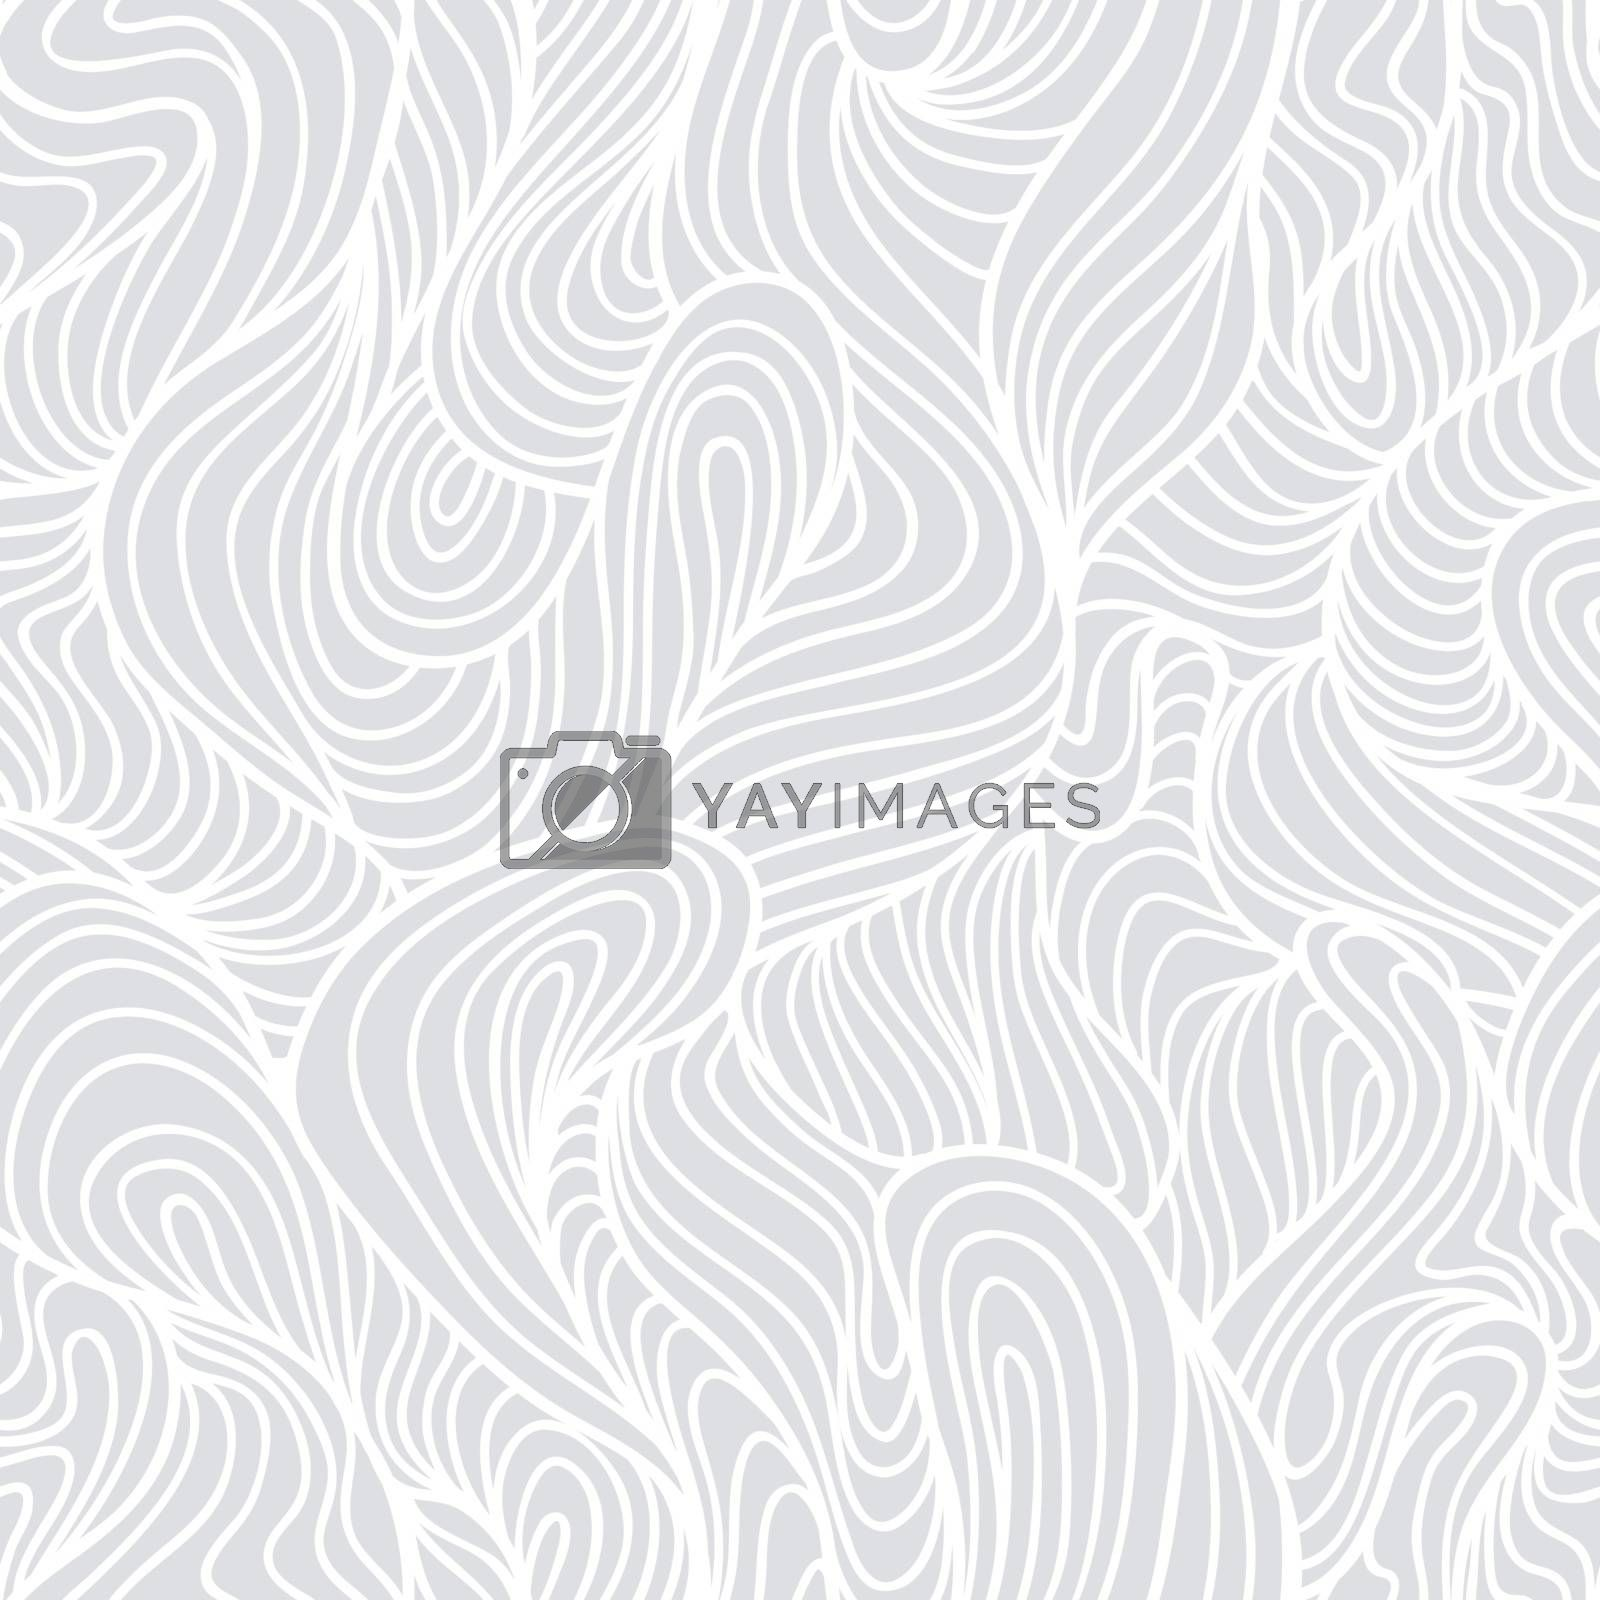 Seamless abstract light hand drawn pattern, waves background. Yarn curly pattern white color